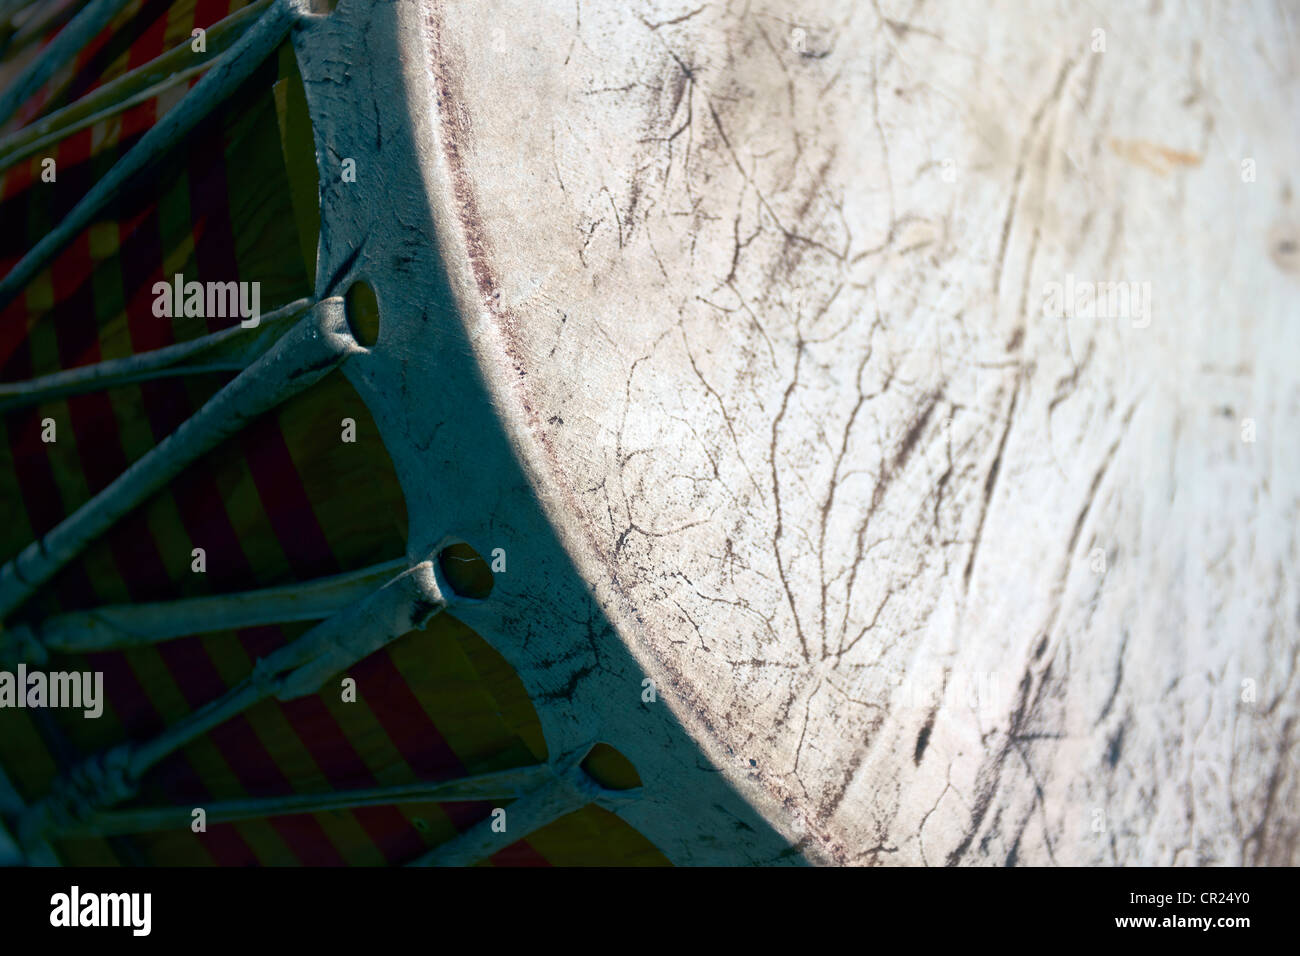 first nations drum detail - Stock Image